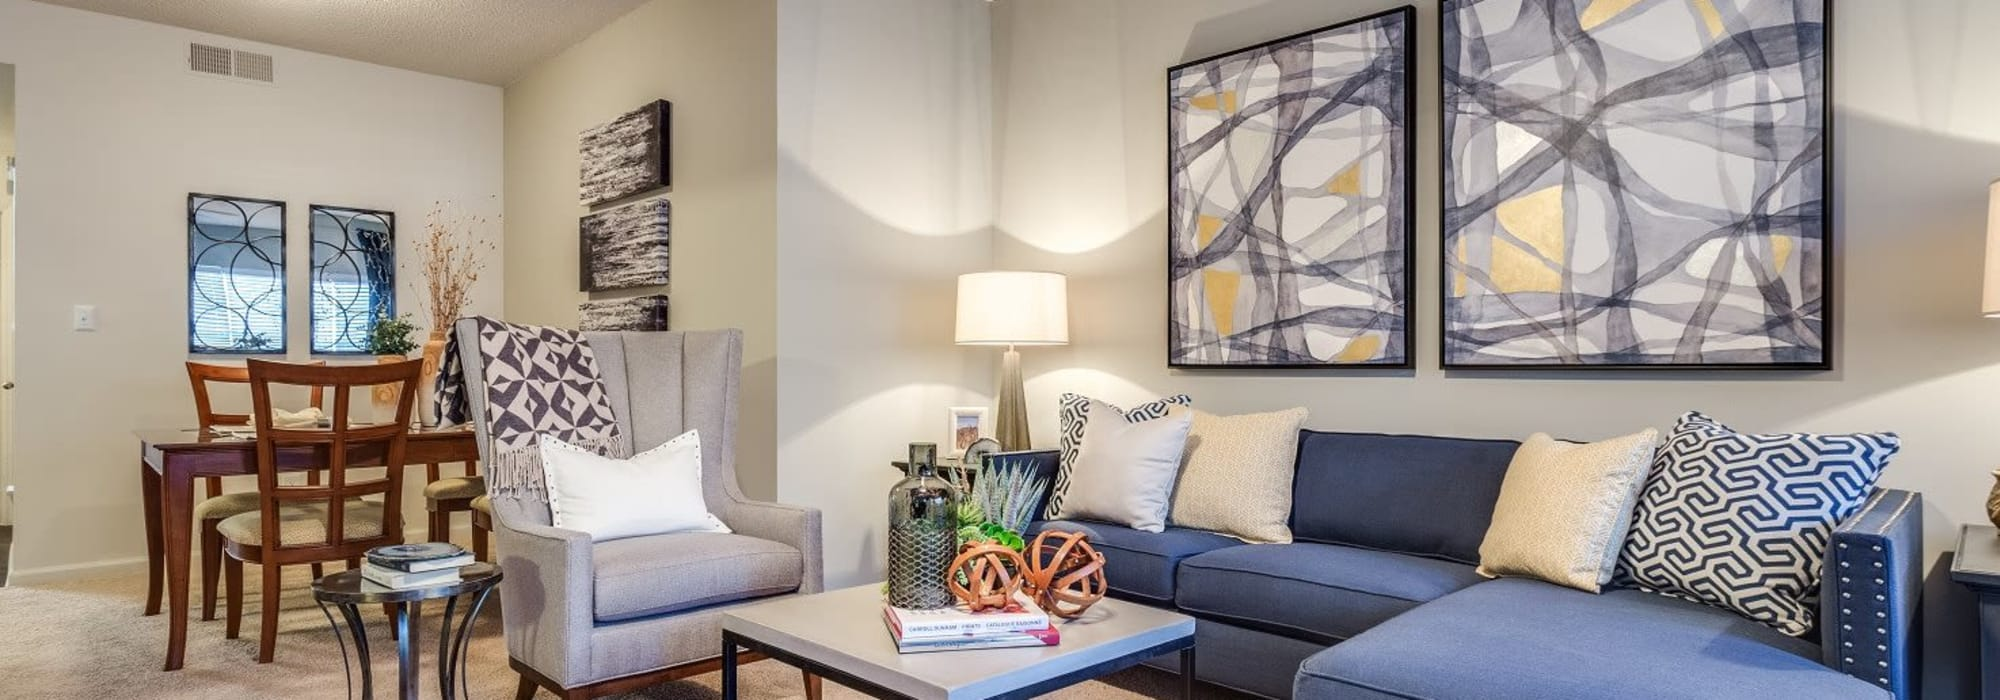 Apartments in Cary, NC